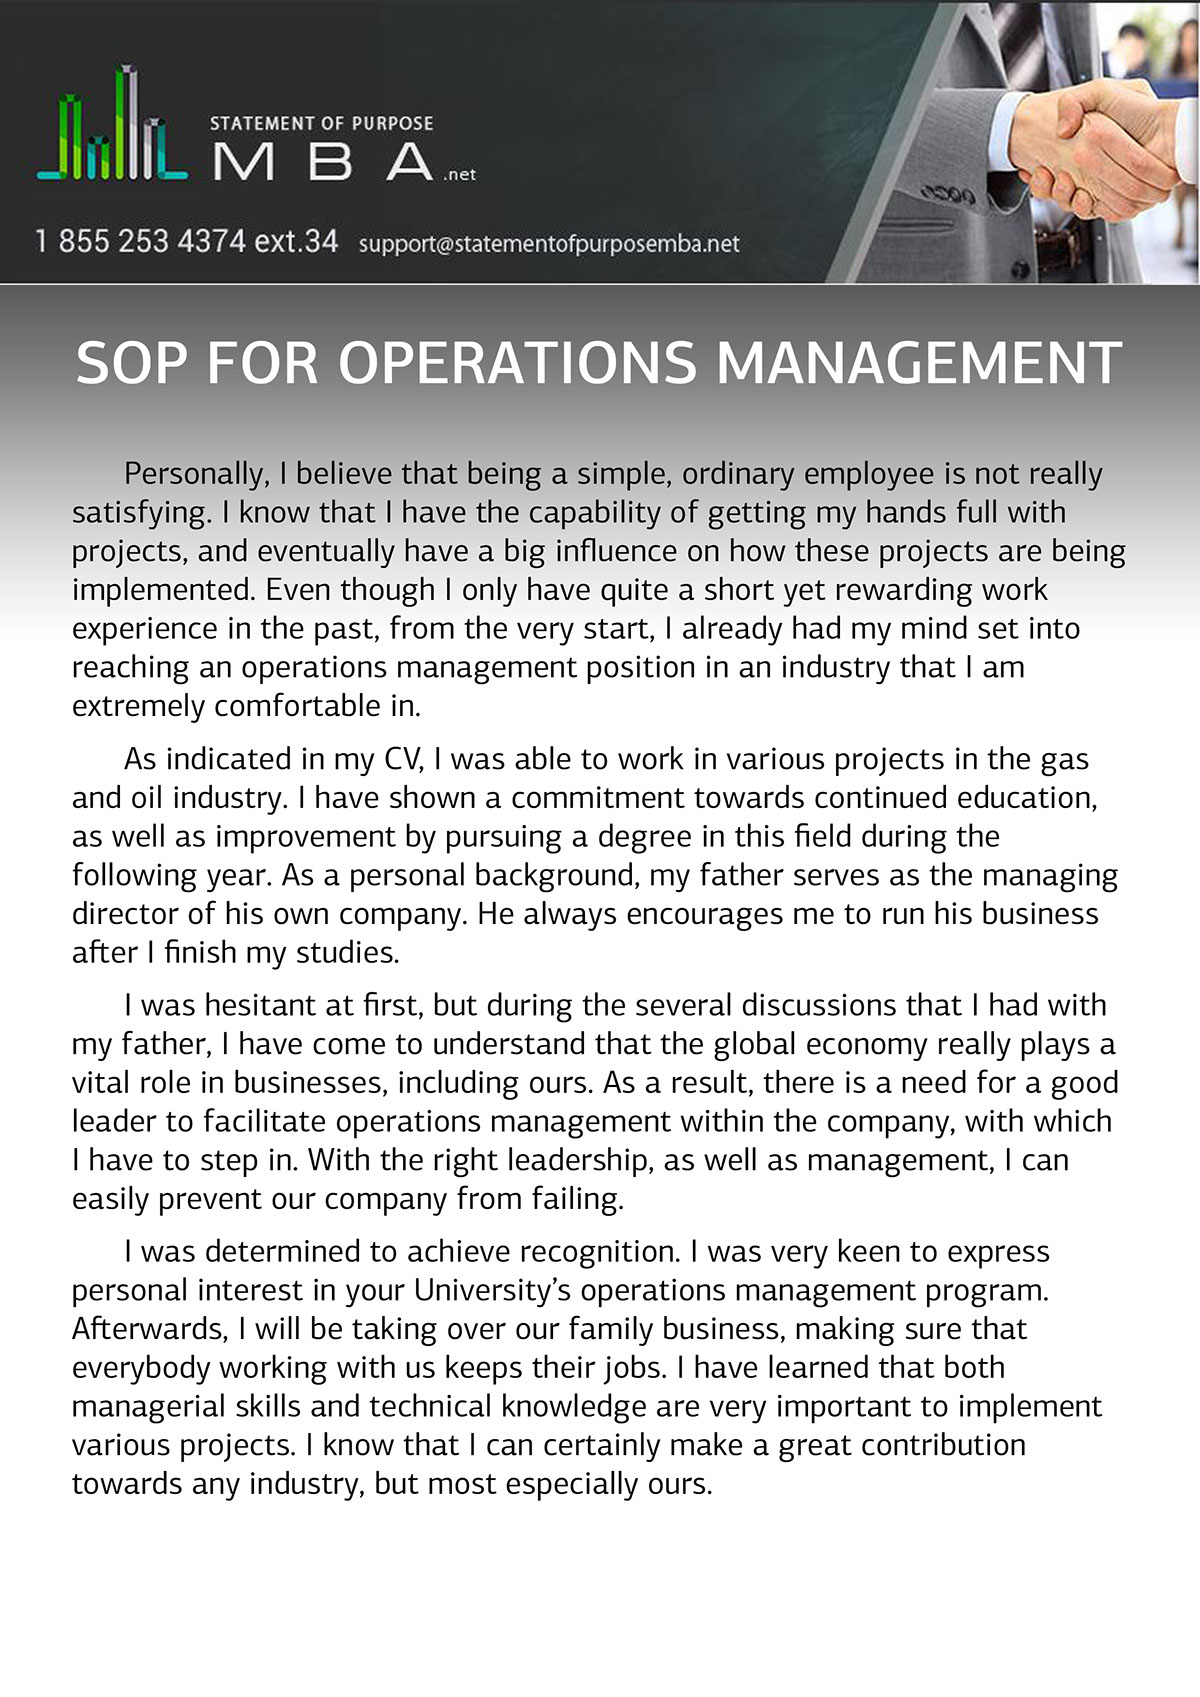 sop for operations management example on behance there are also great tips how to write an operations management sop to learn more or to check our sample